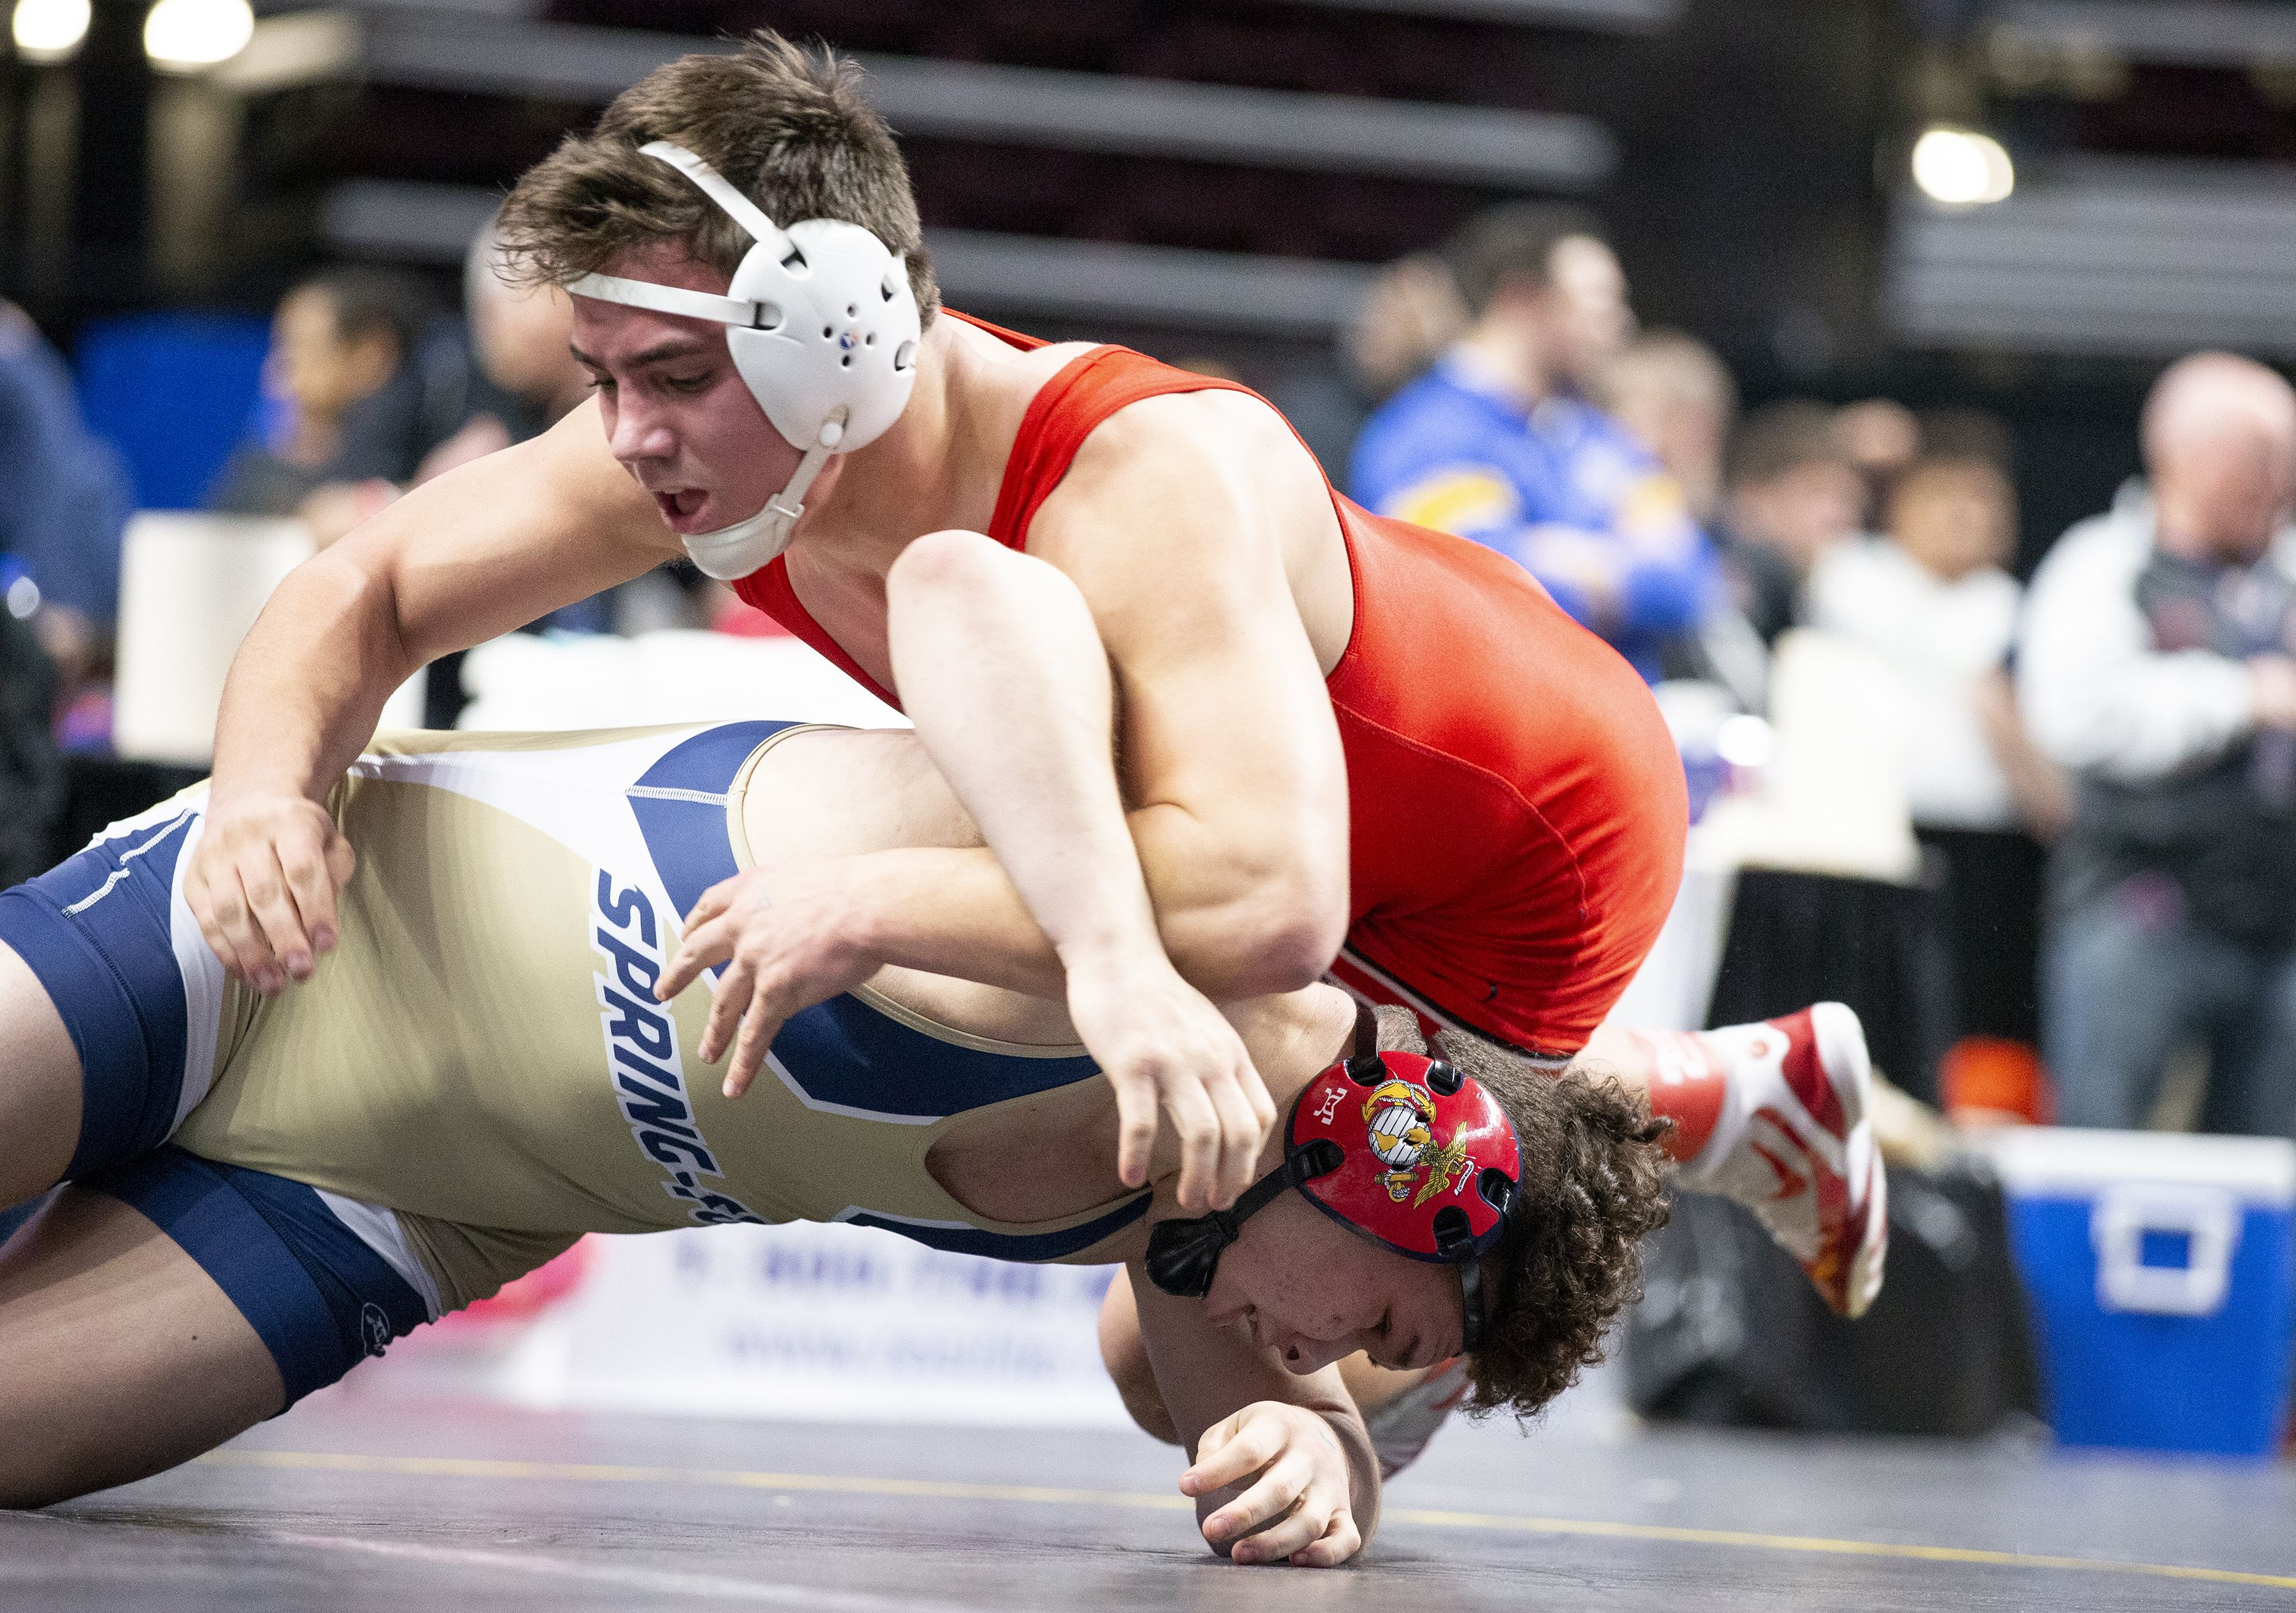 Pennsylvania High School Wrestling Pennlive Com